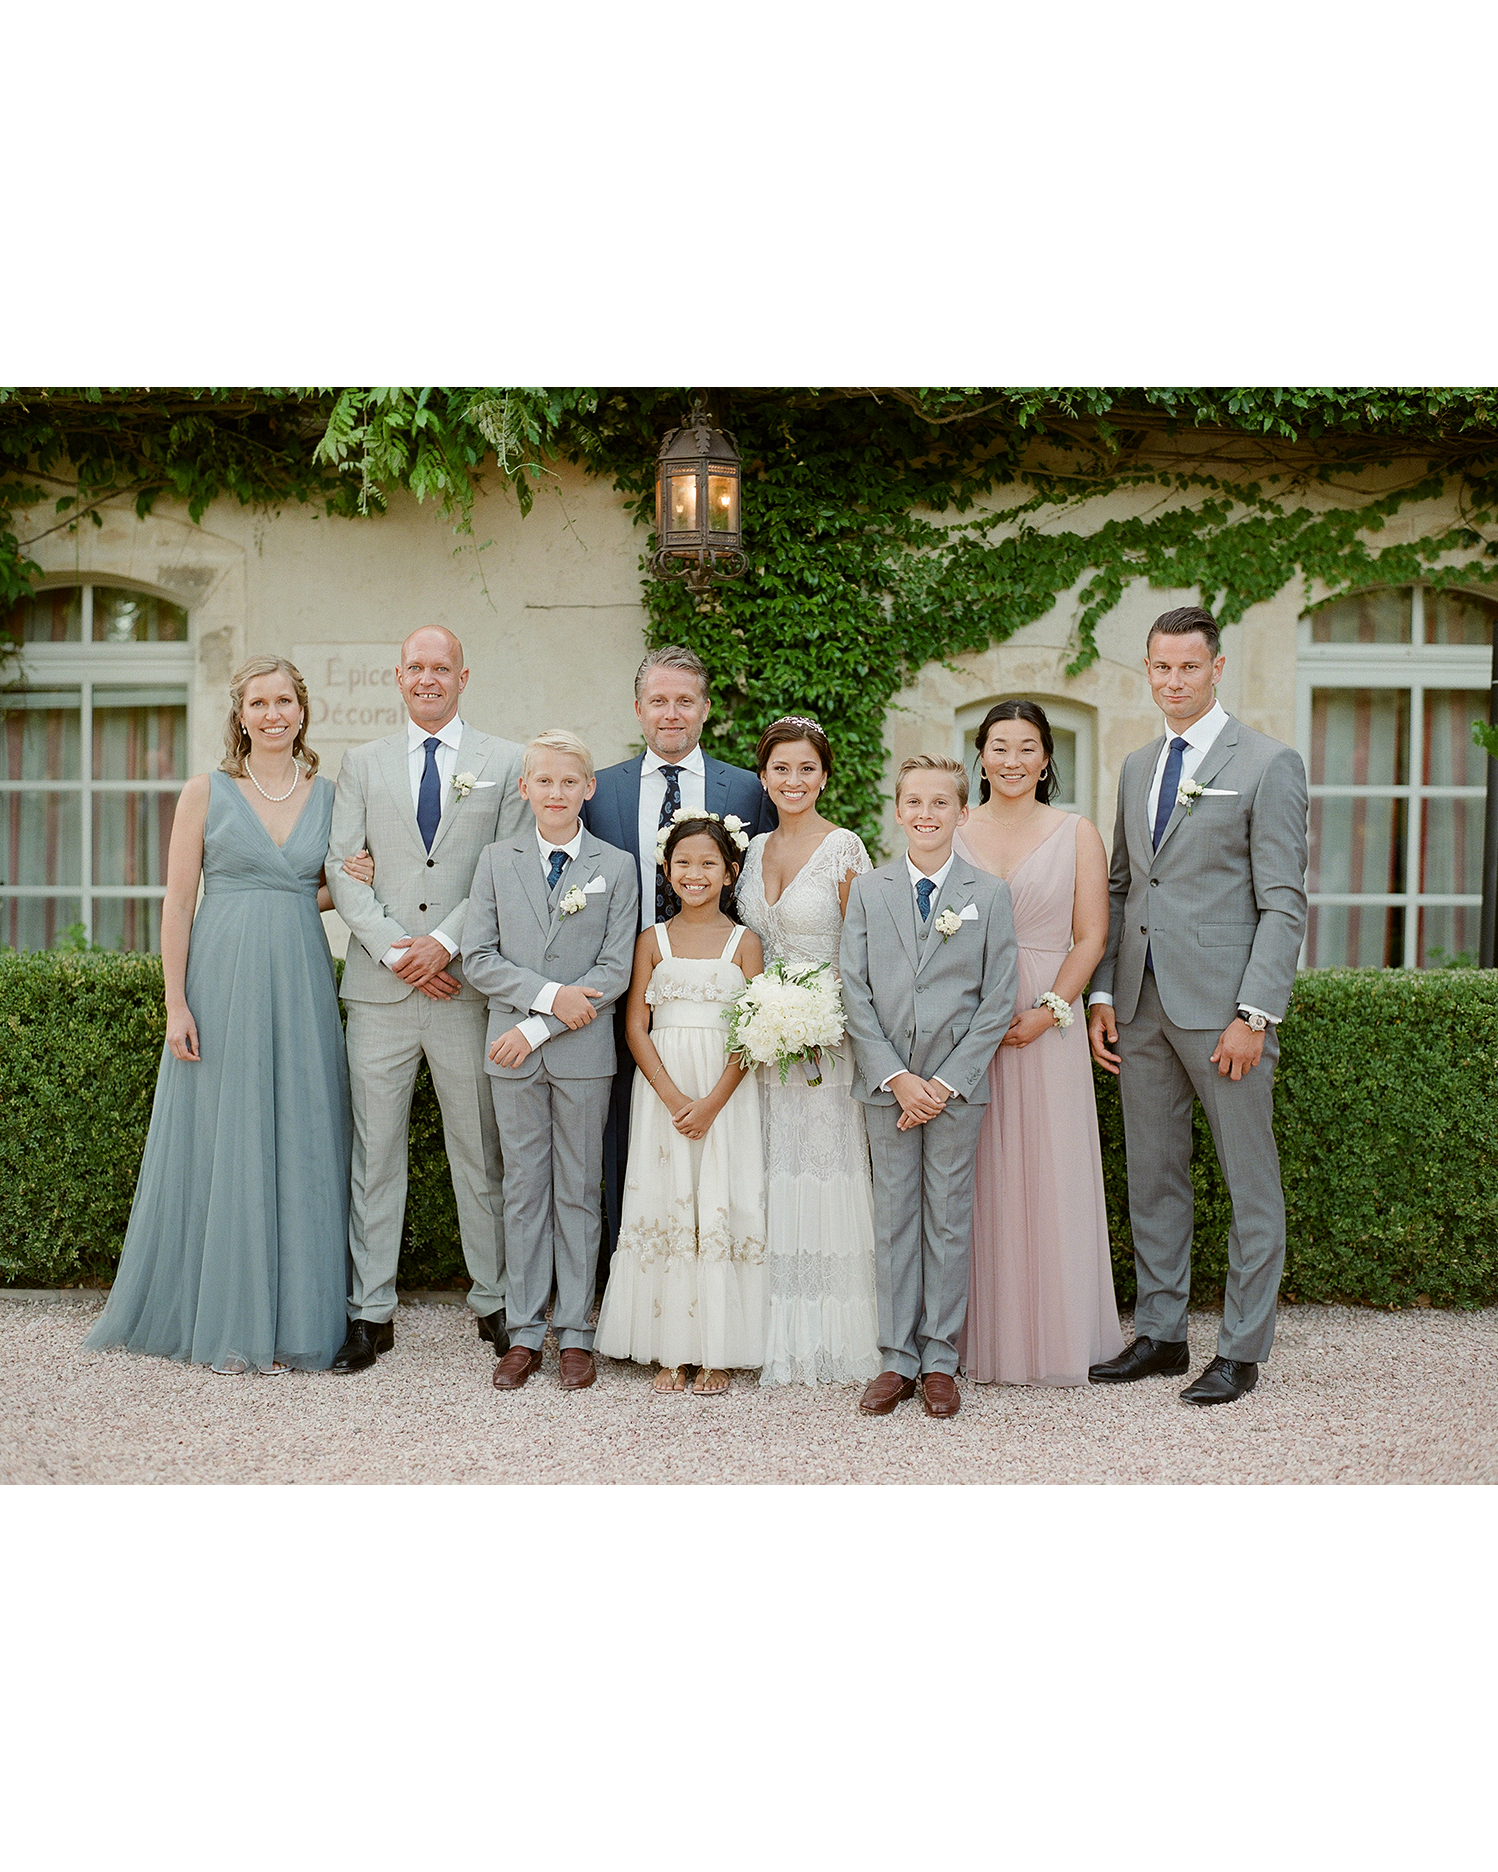 jannicke paal france wedding family group portrait